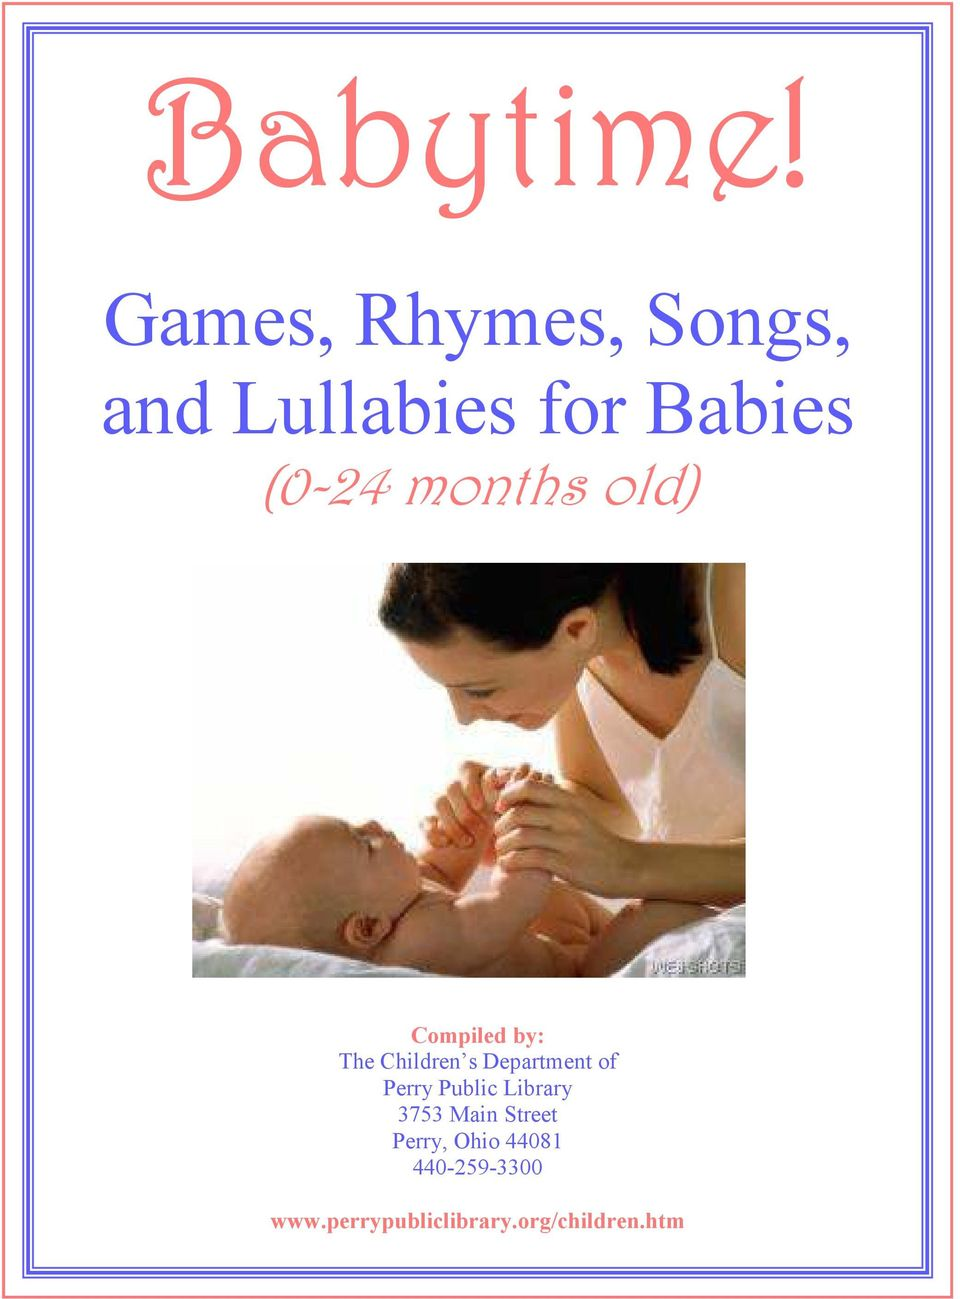 months old) Compiled by: The Children s Department of